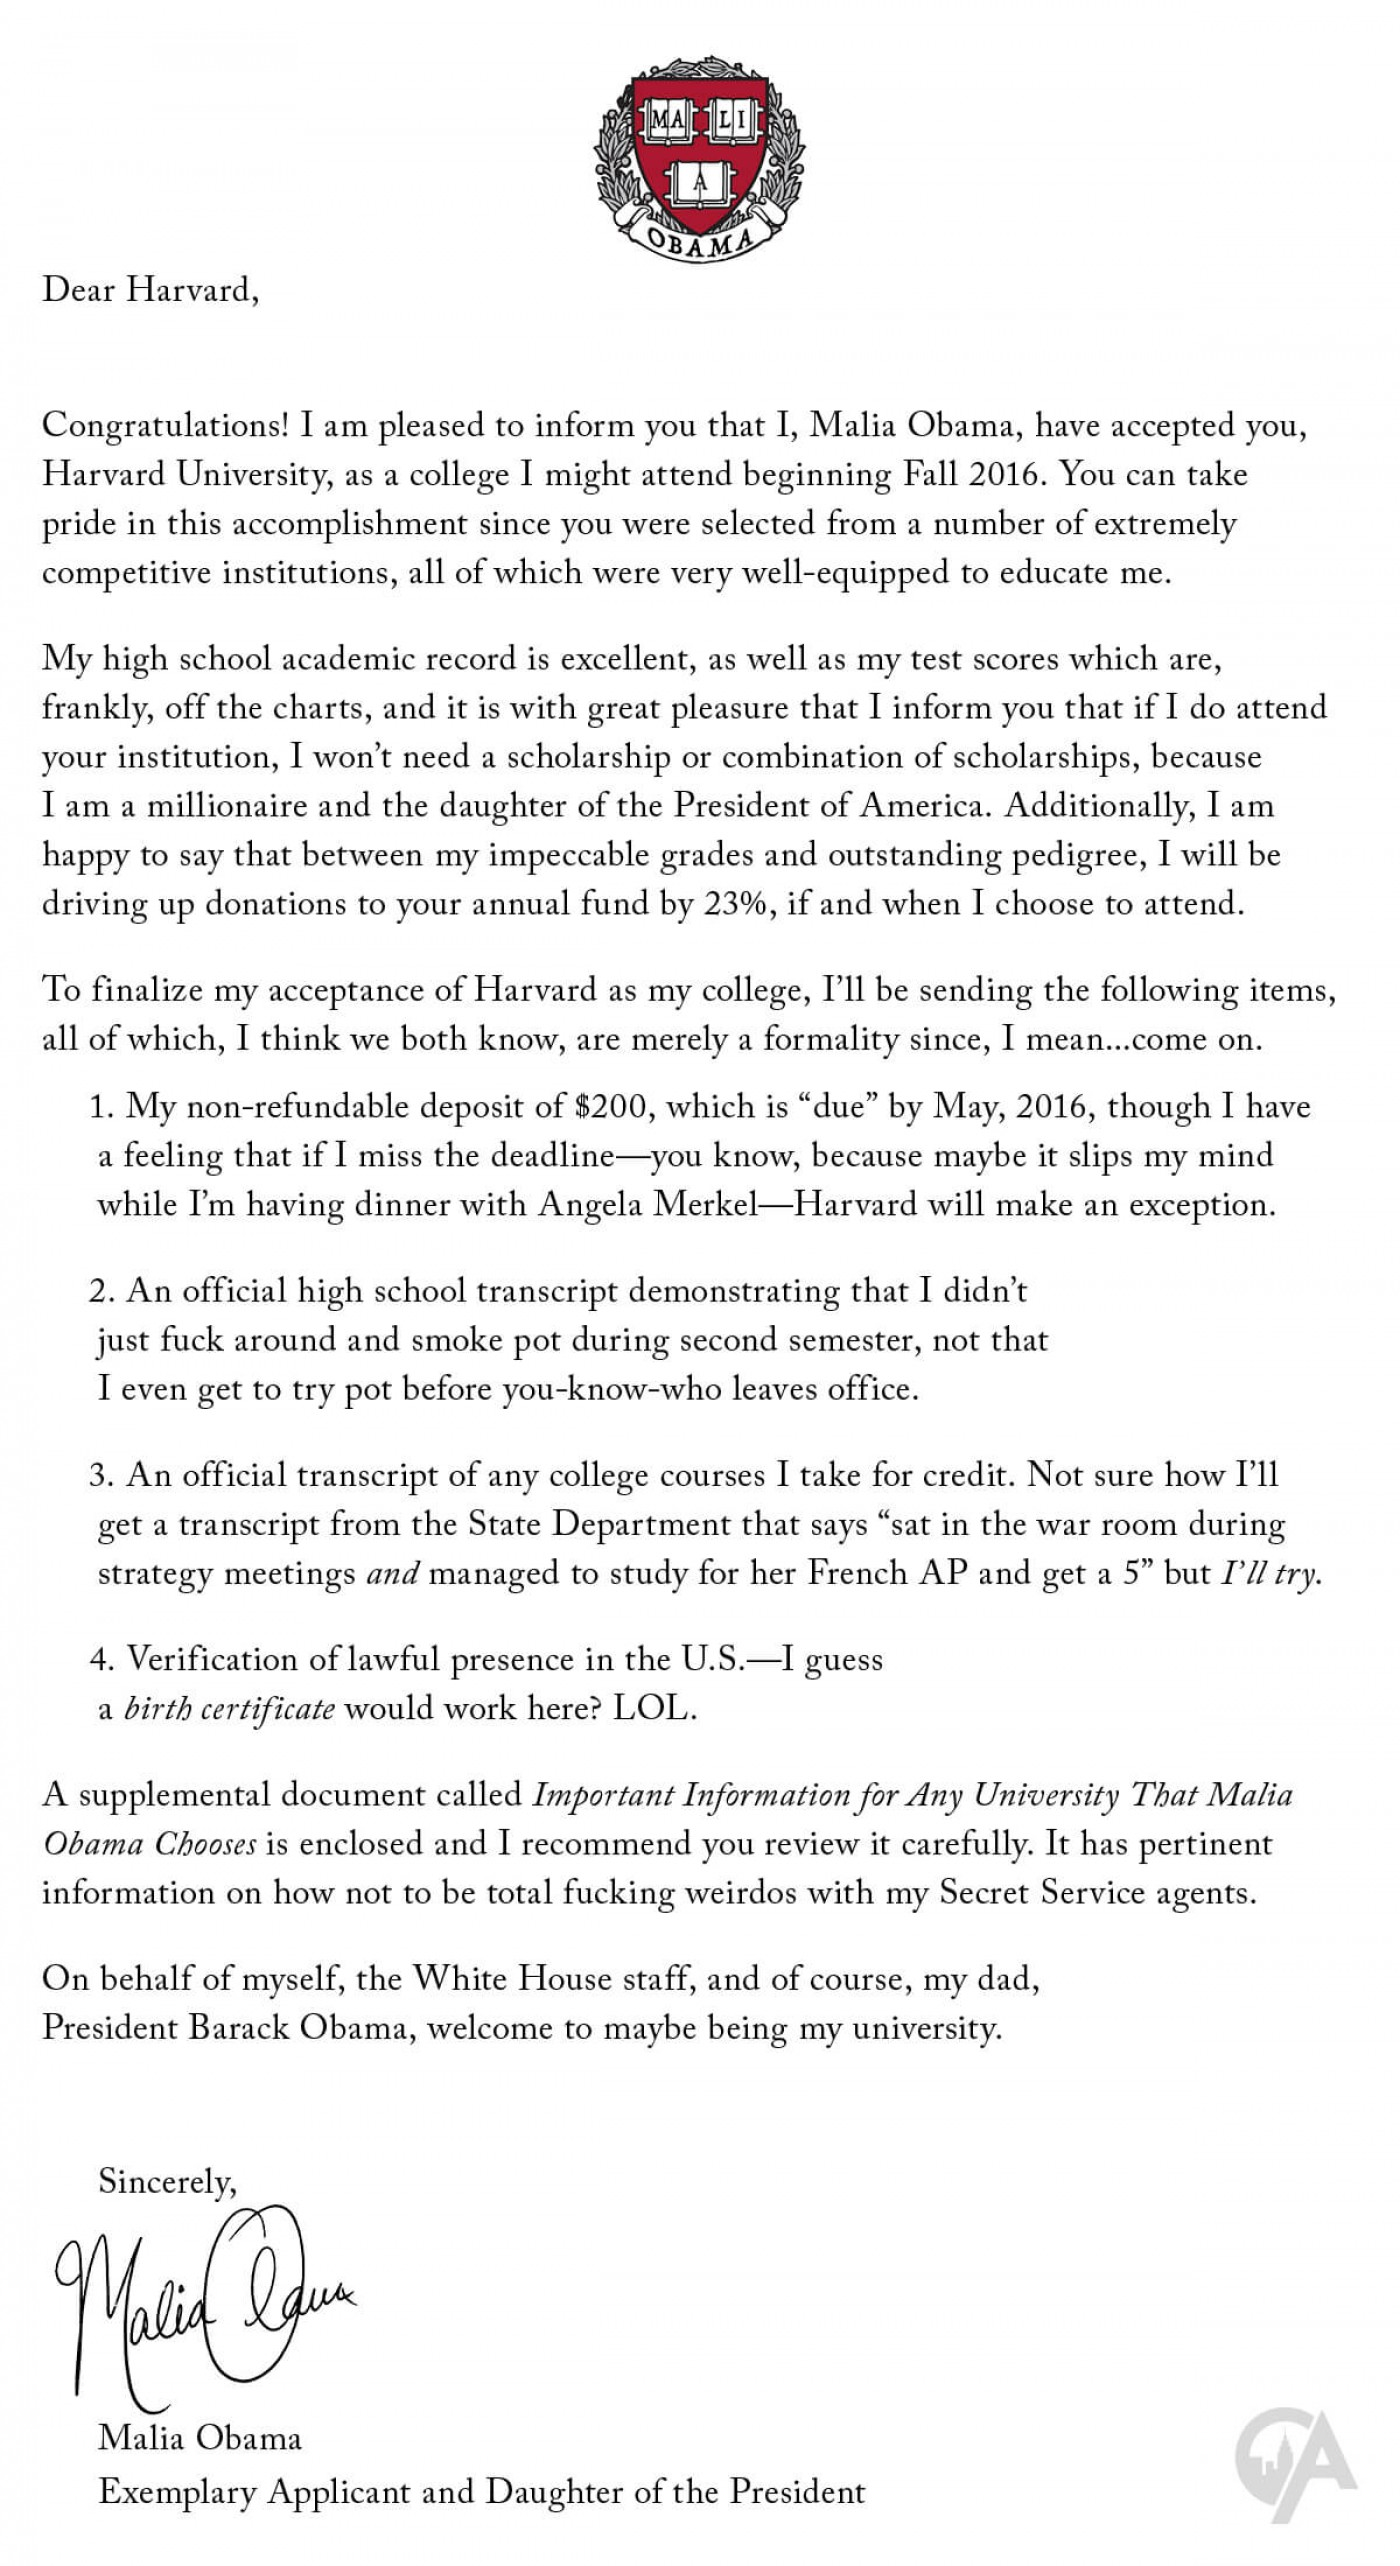 003 Harvard Acceptance Essays Essay Example Malia Obama Sends Letter To Maliaobamasacceptancelettertoha College Application That Were Frightening 50 Successful Pdf Free 2017 3rd Edition 1400